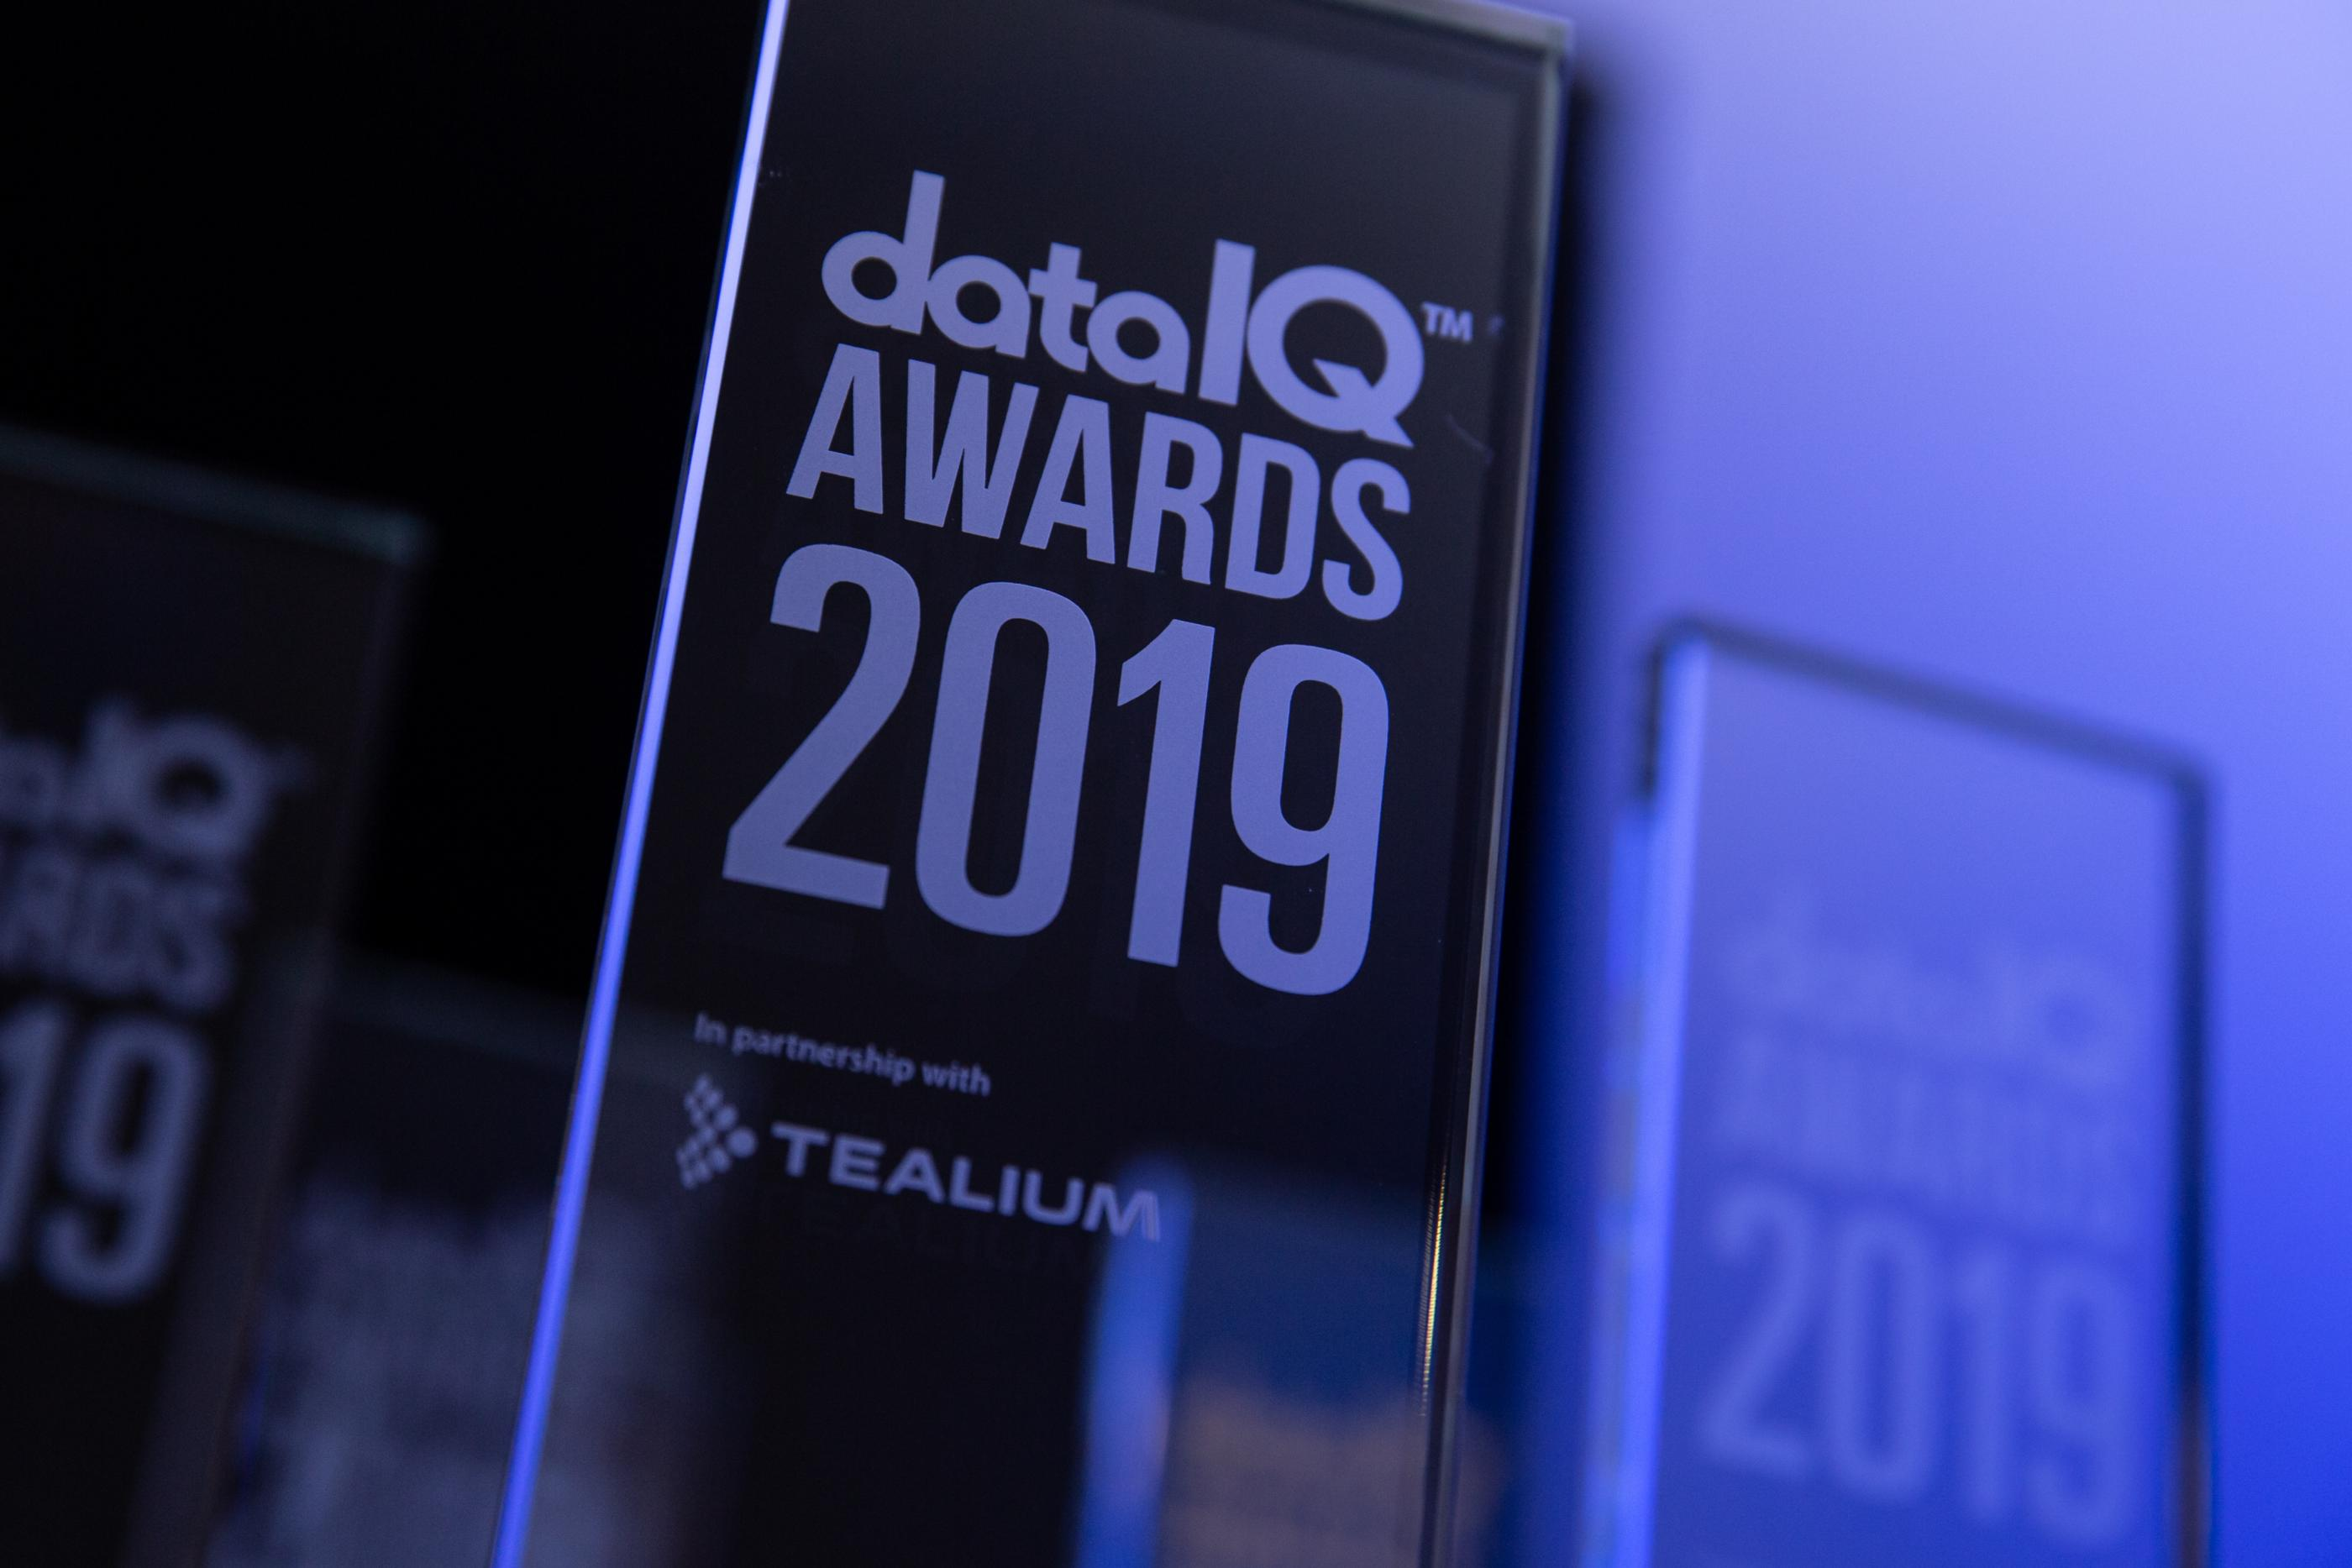 DataIQ Awards 2019